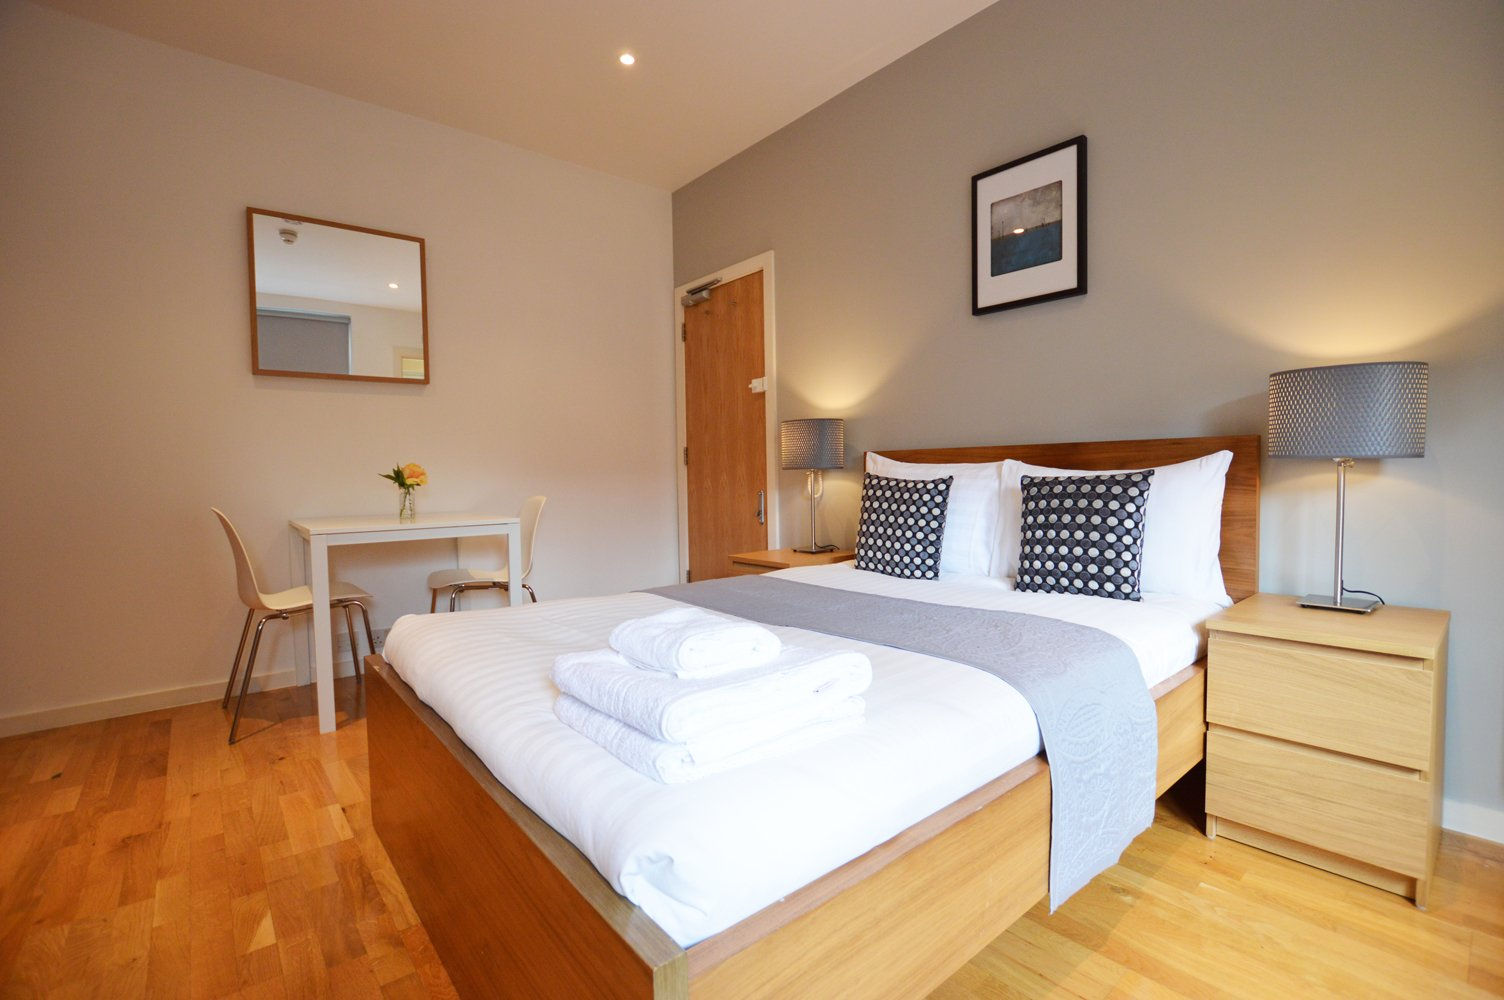 Russell-Square-Apartments-London-|-Modern-Accommodation-Russell-Square-|-Self-catering-Accommodation-London-|-Award-Winning-&-Accredited-|-BOOK-NOW